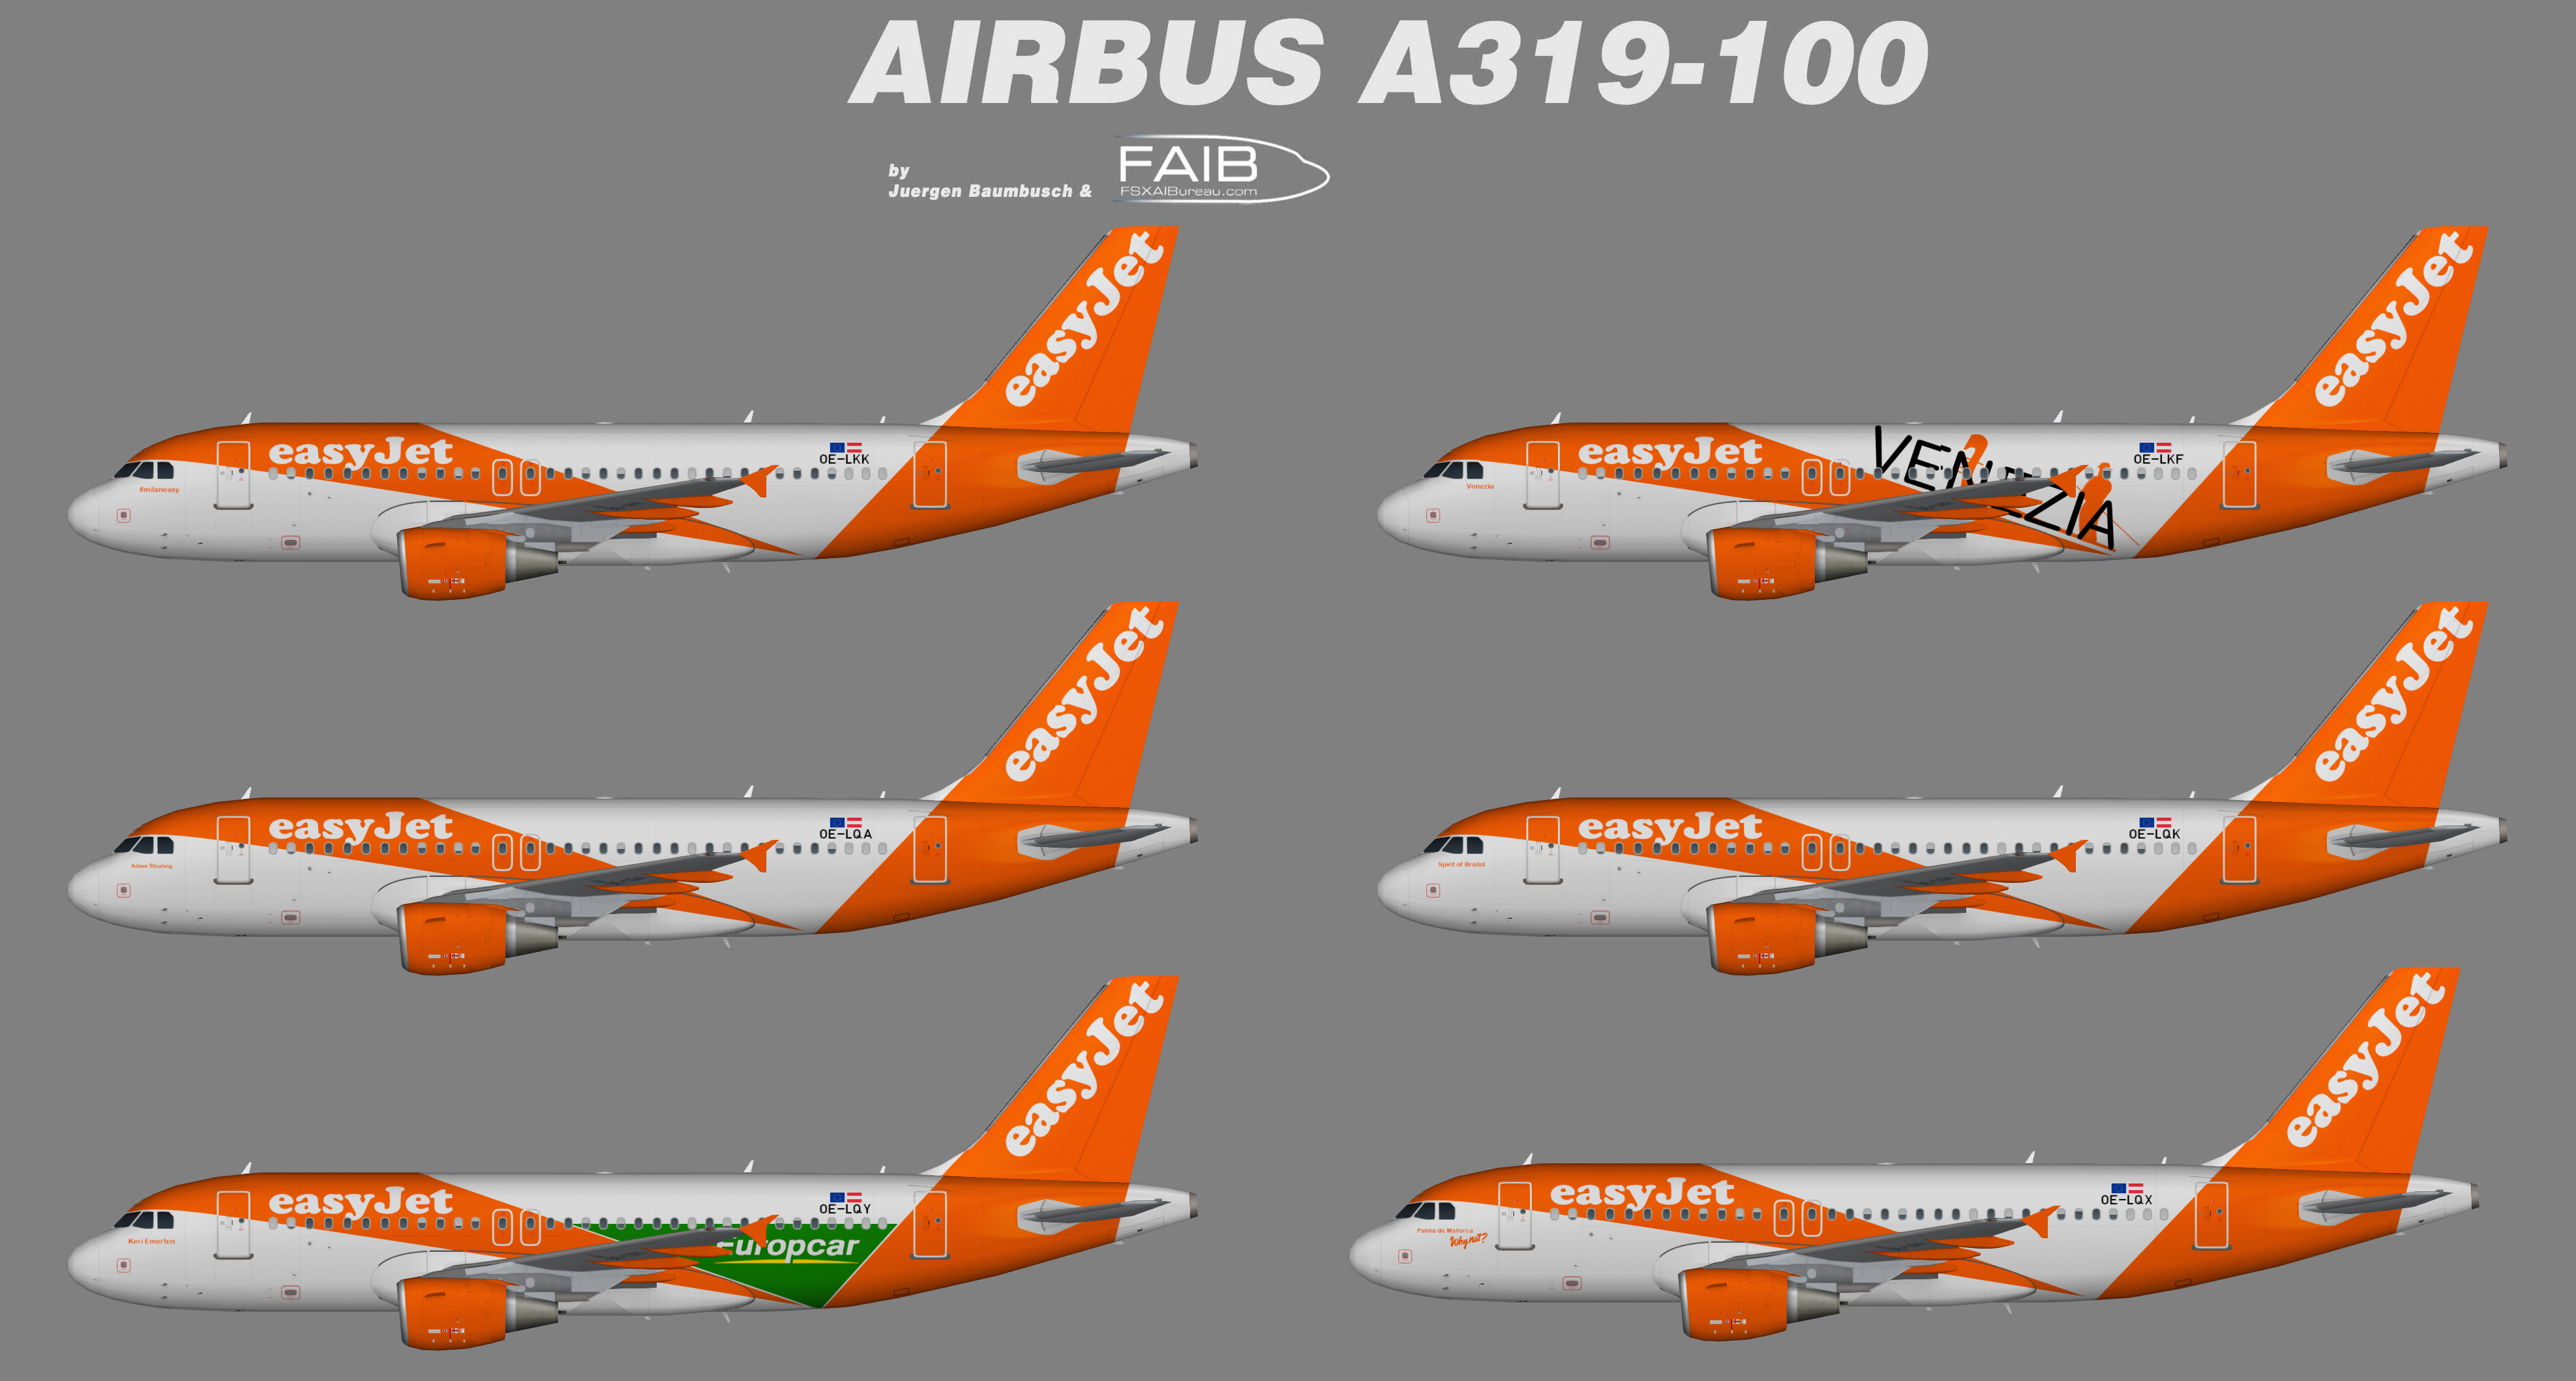 Easyjet Europe Specials Airbus A319-100